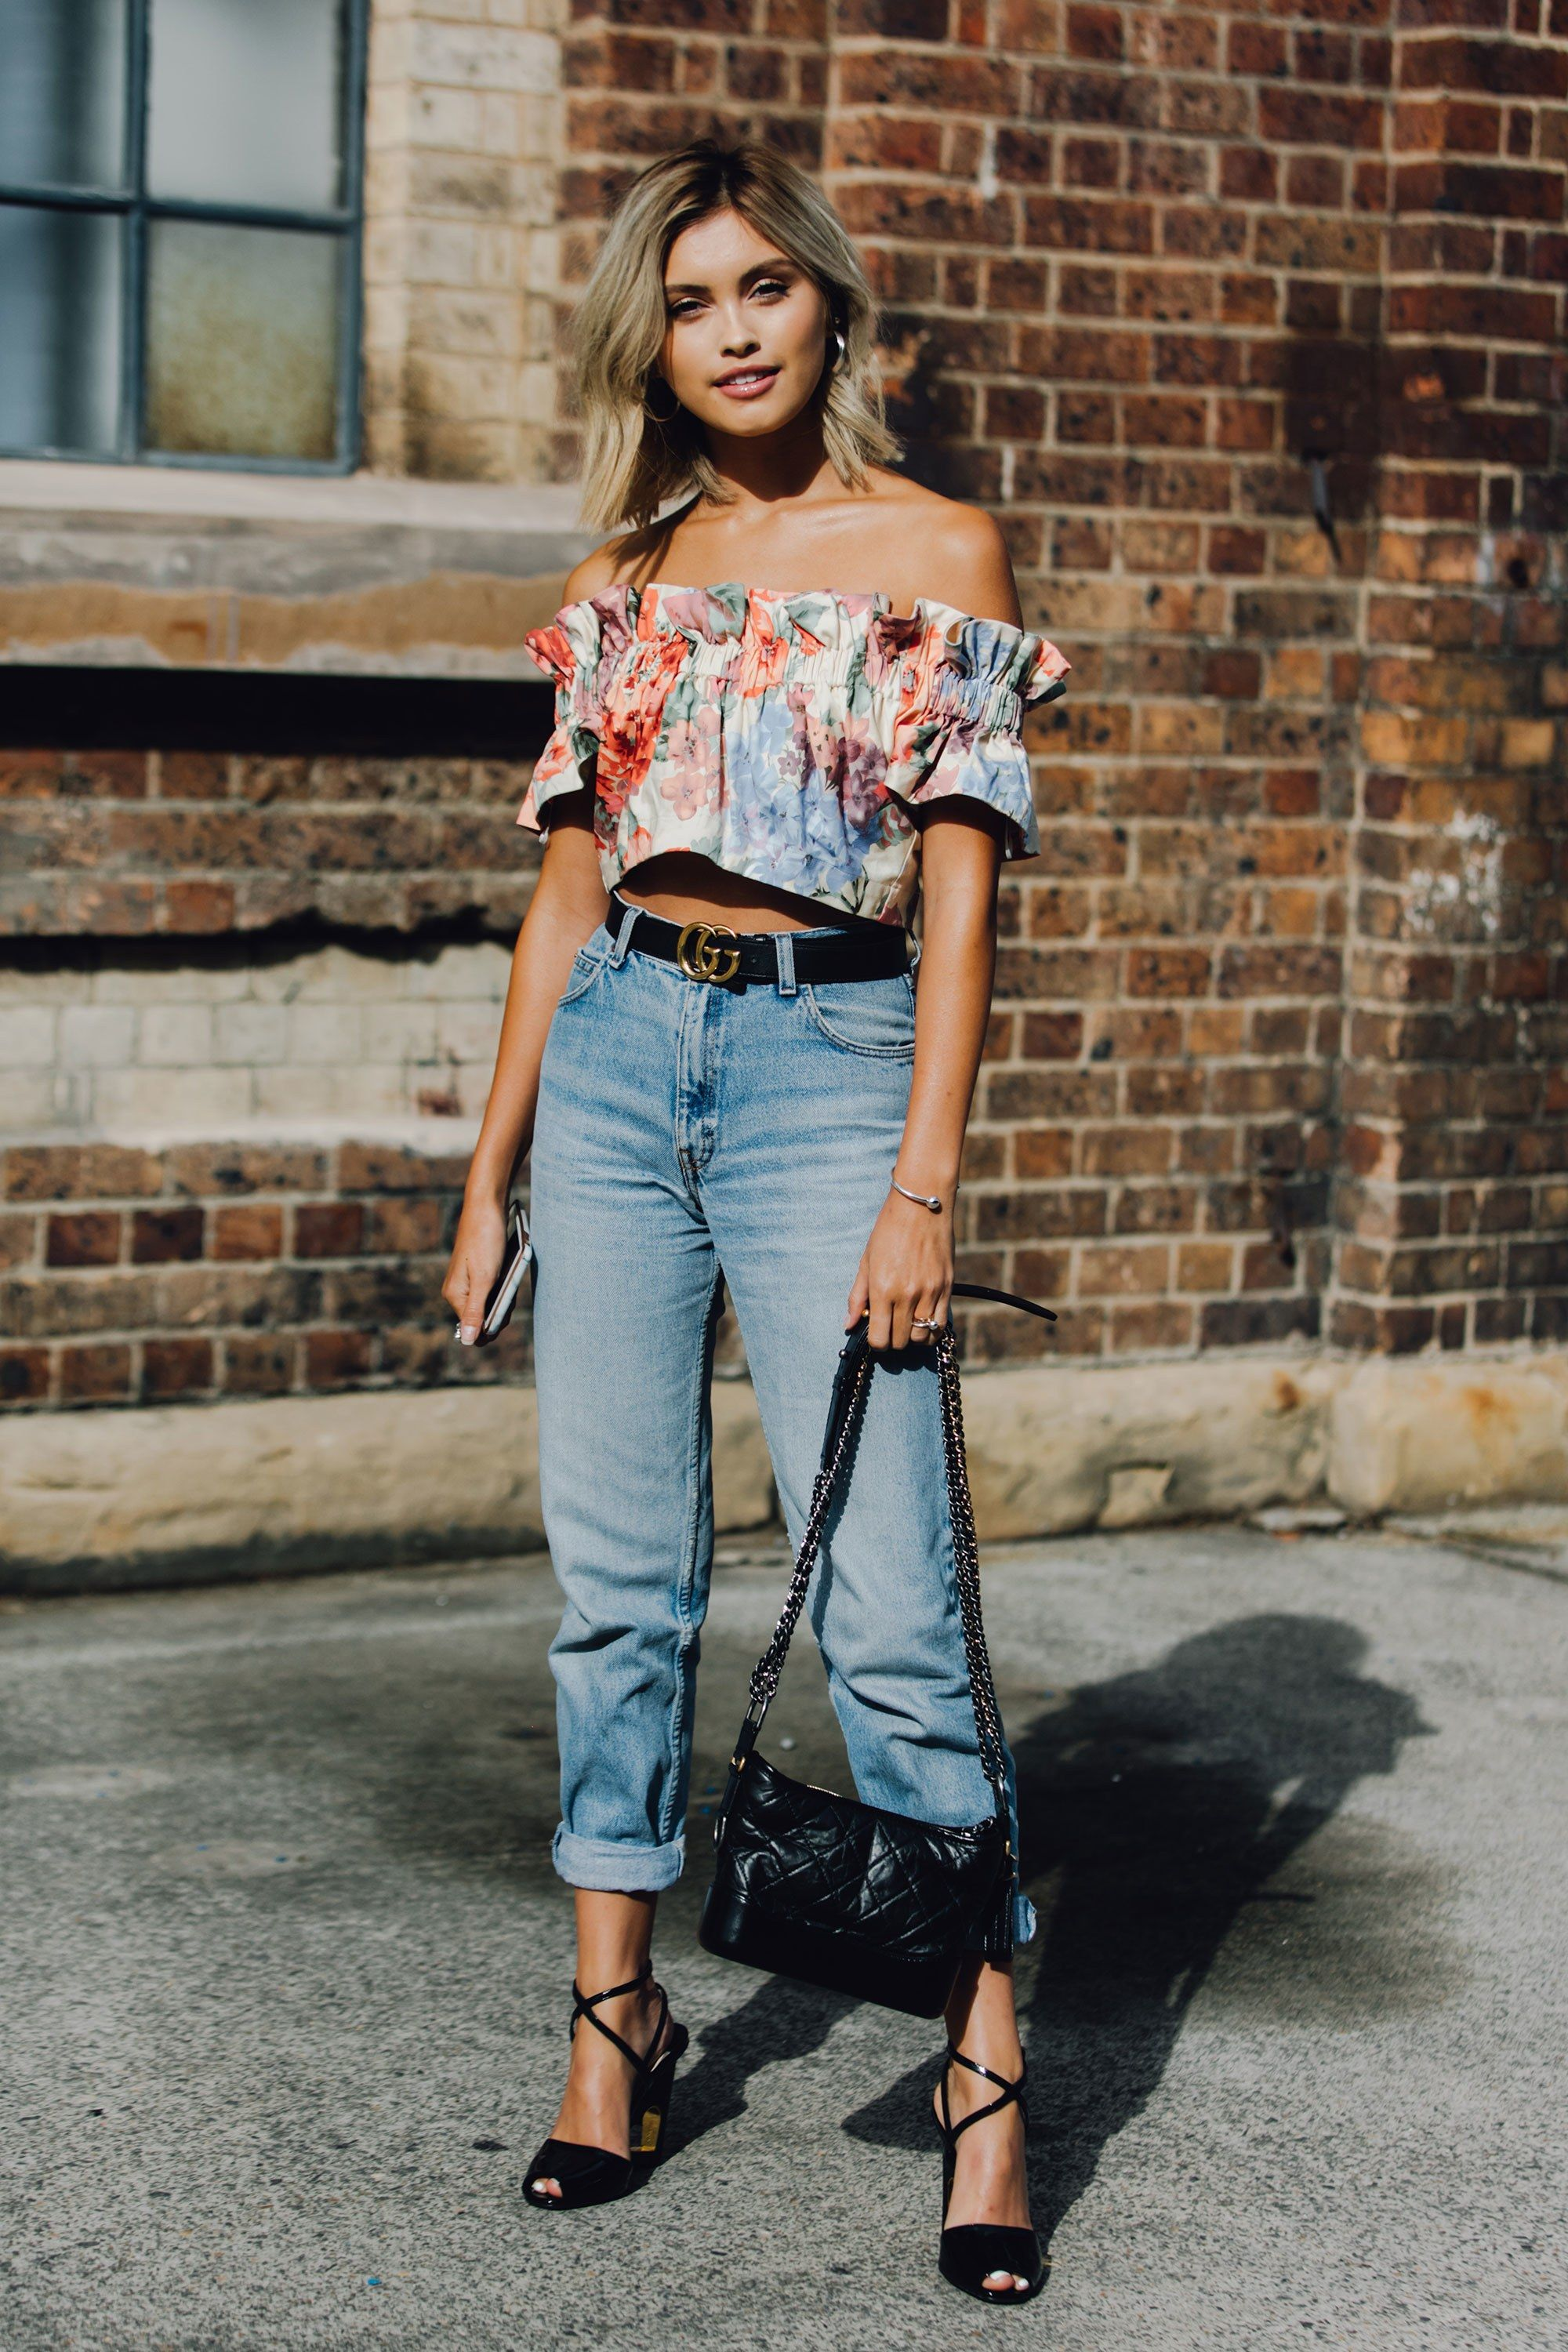 The Best Street Style From Australian Fashion Week 2017 ...